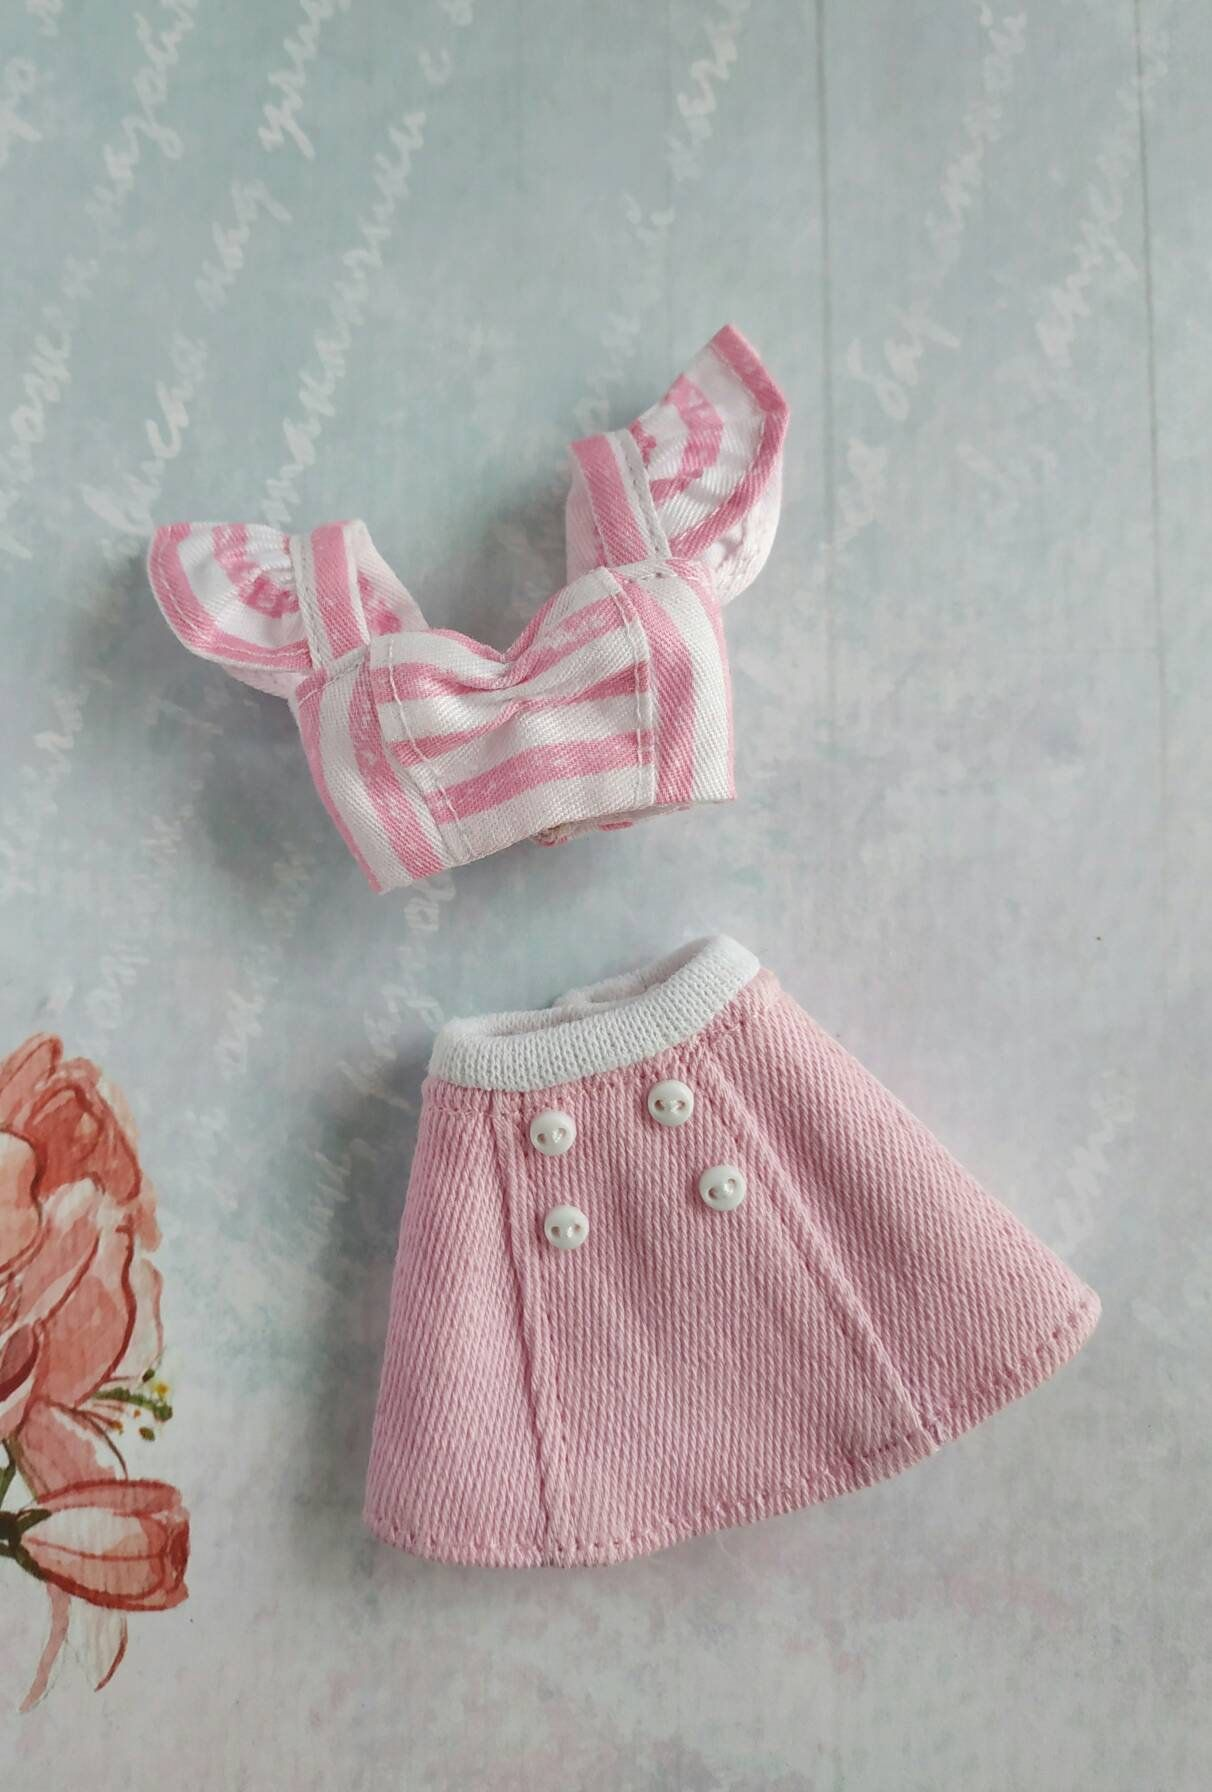 Items similar to Summer striped white pink crop top, pink denim skirt for Blythe doll, blythe clothes ithes outfit on Etsy -   14 DIY Clothes Skirt crop tops ideas